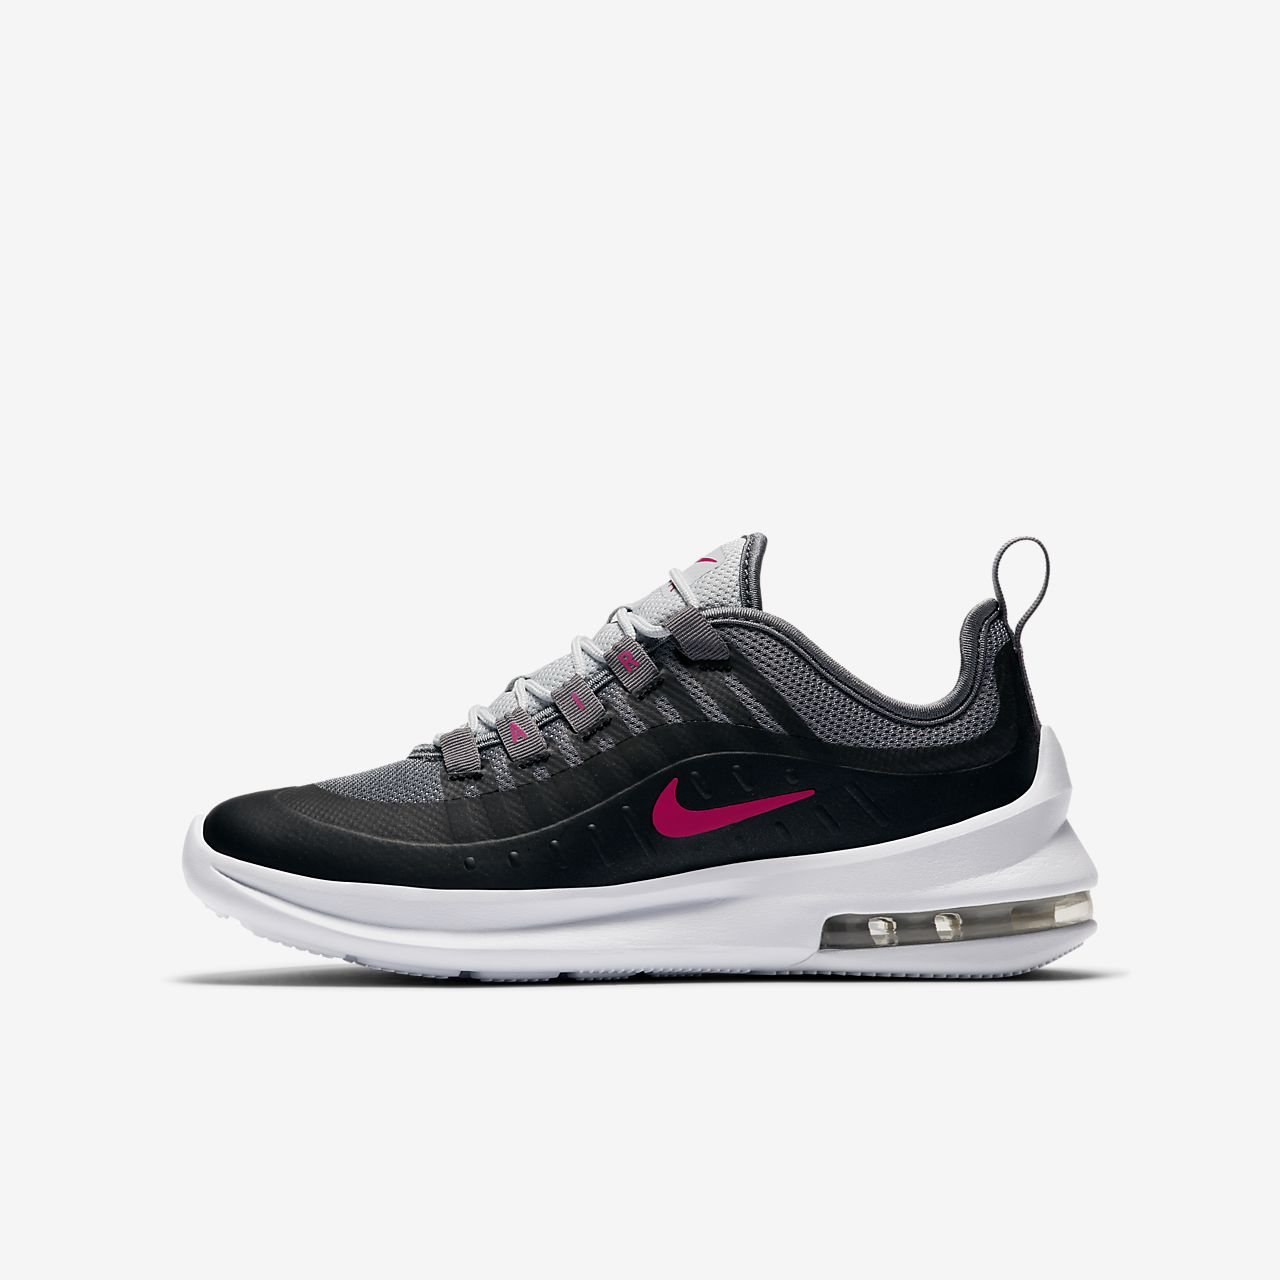 Chaussures Nike Pas Cher Free Run Nzxt